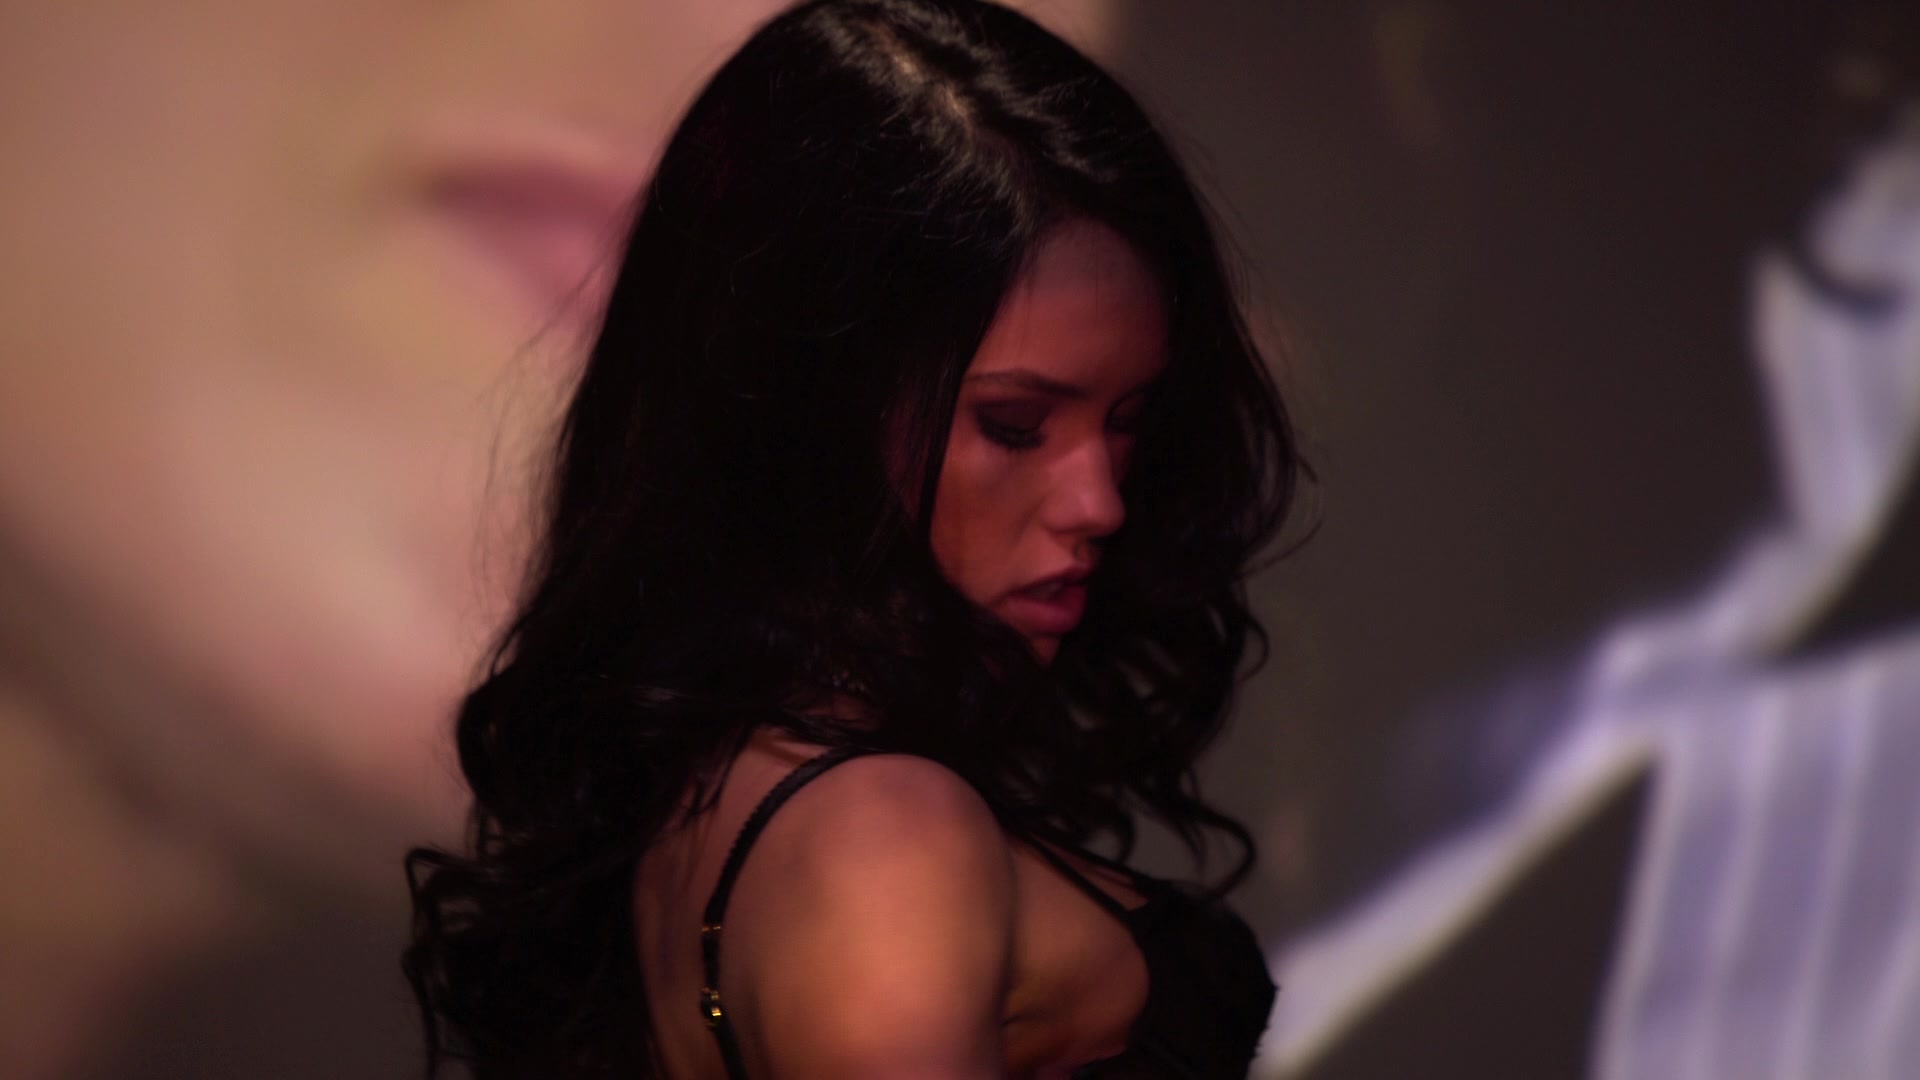 Scene with Megan Rain - image 3 out of 20